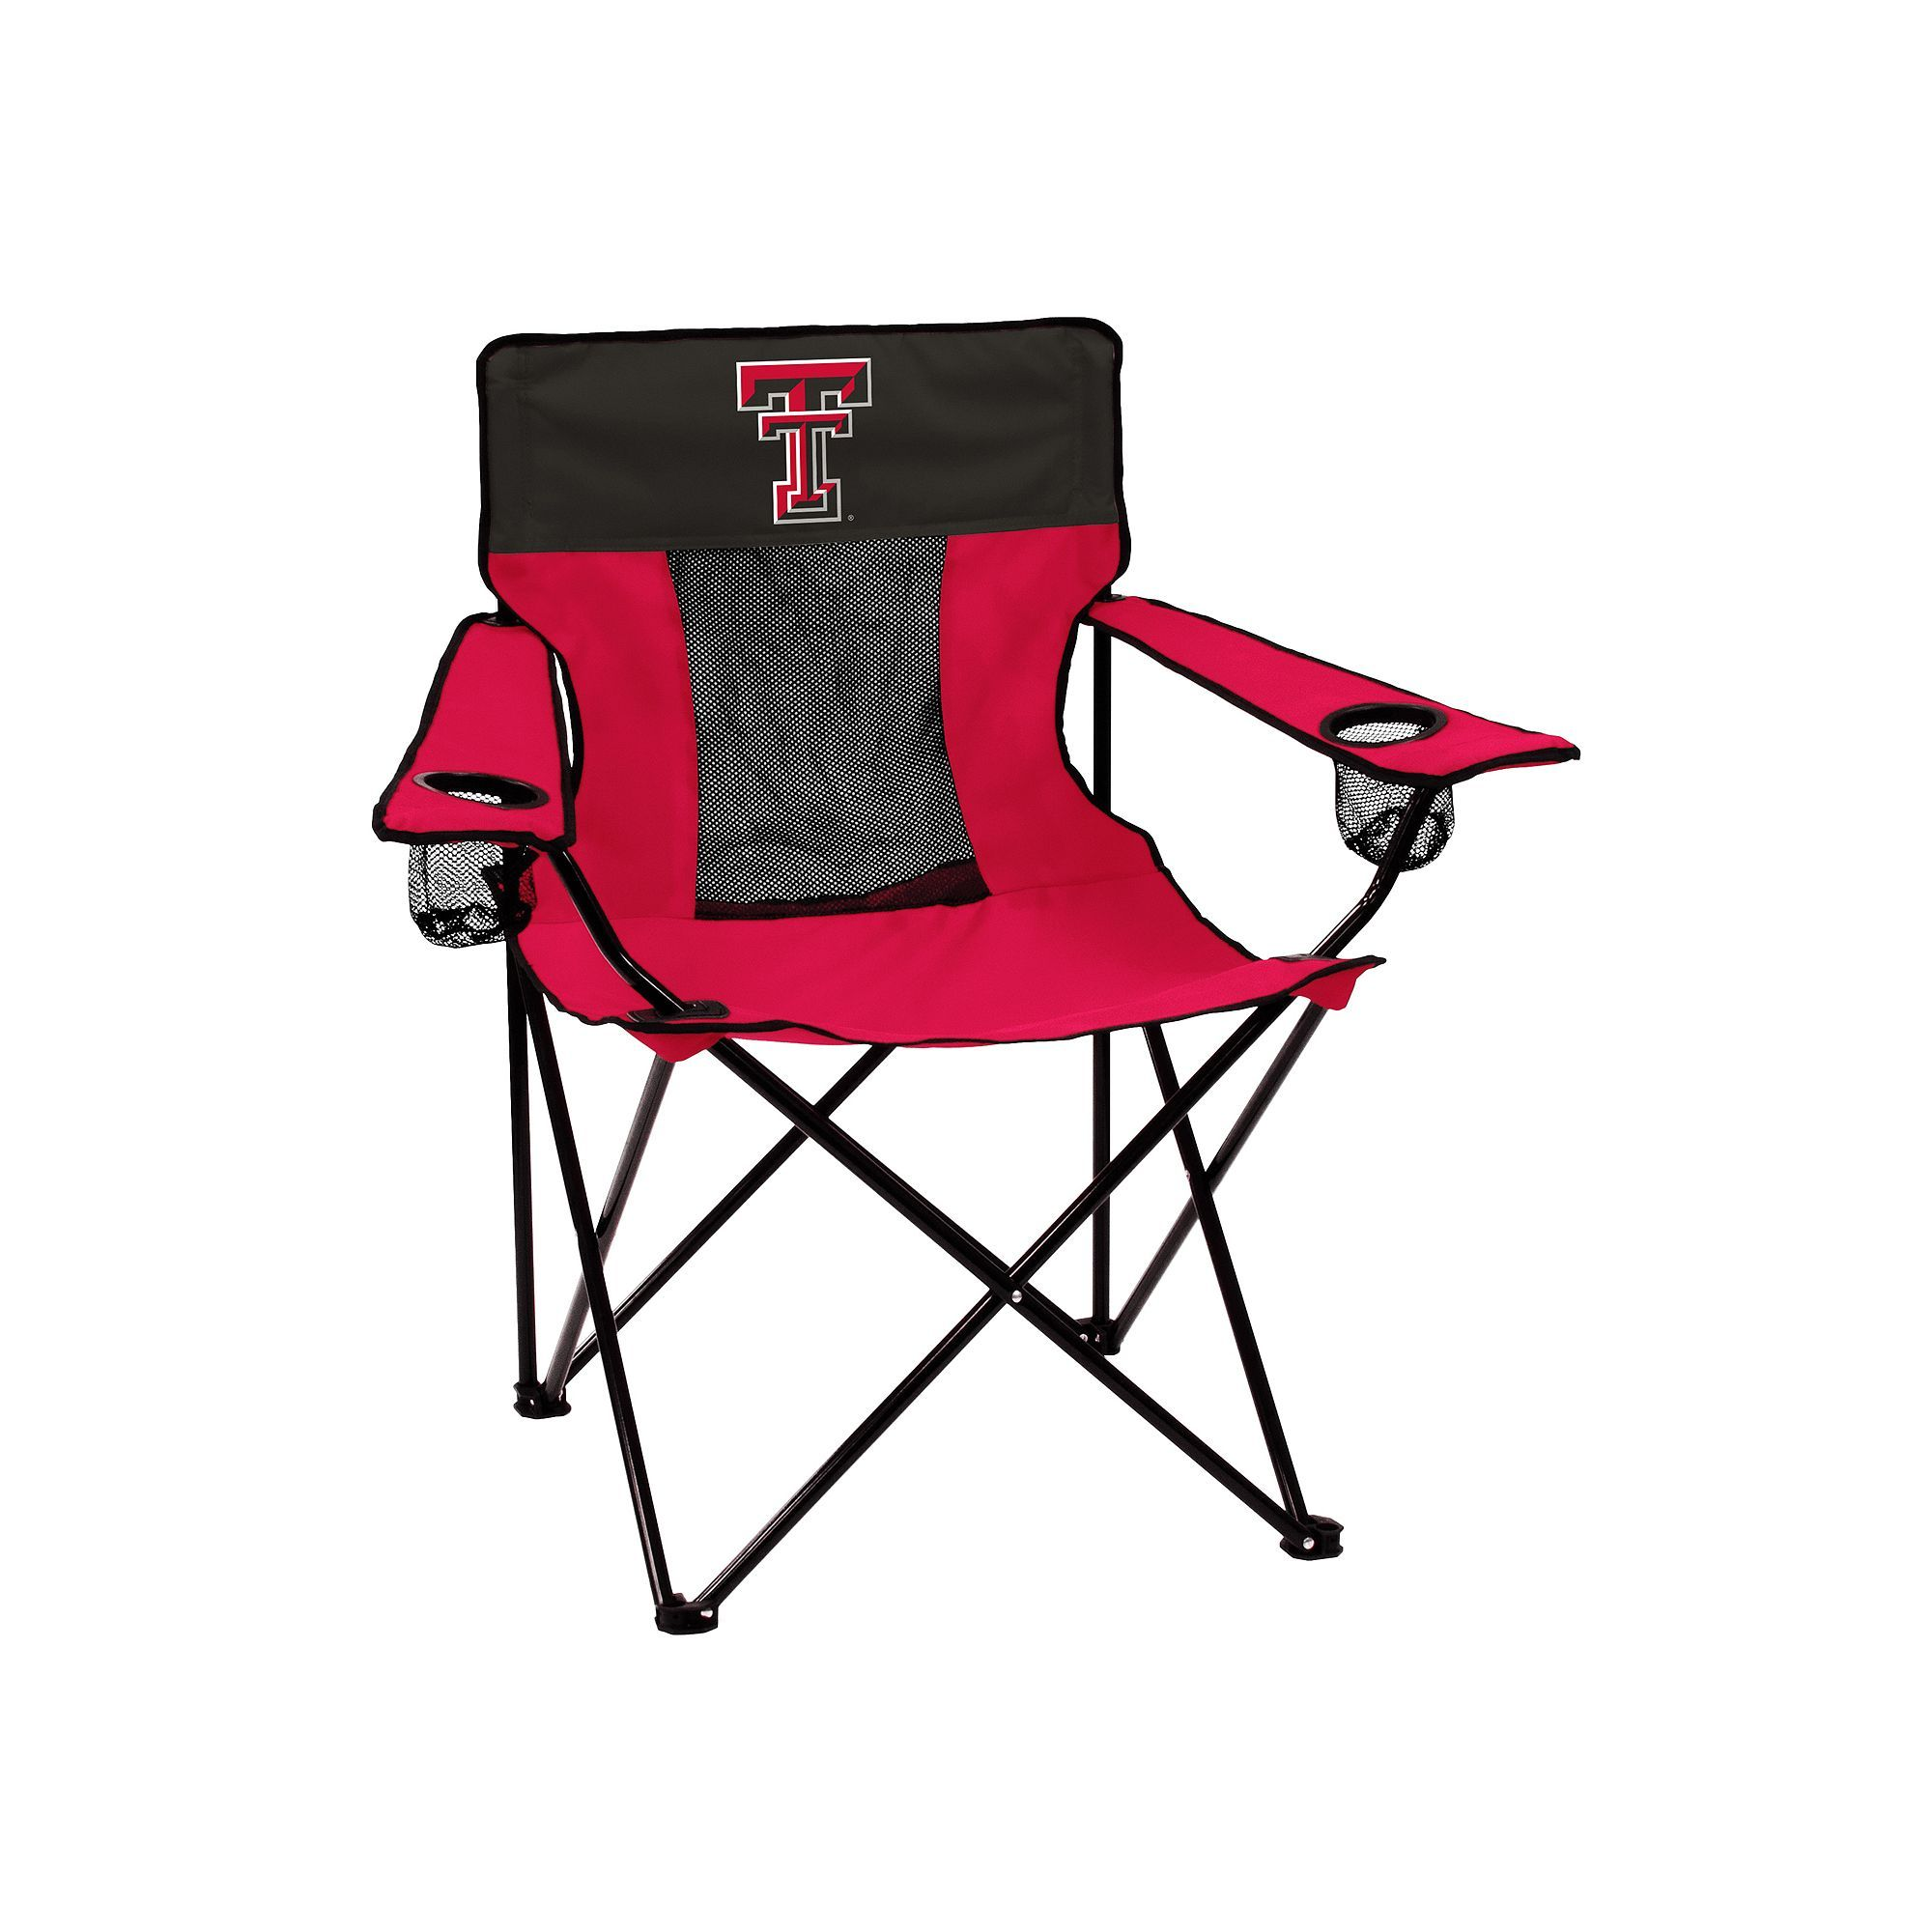 Outdoor Logo Brand Texas Tech Red Raiders Elite Fold Up Chair  MulticolorOutdoor Logo Brand Texas Tech Red Raiders Elite Fold Up Chair  . Pantone Folding Chairs For Sale. Home Design Ideas